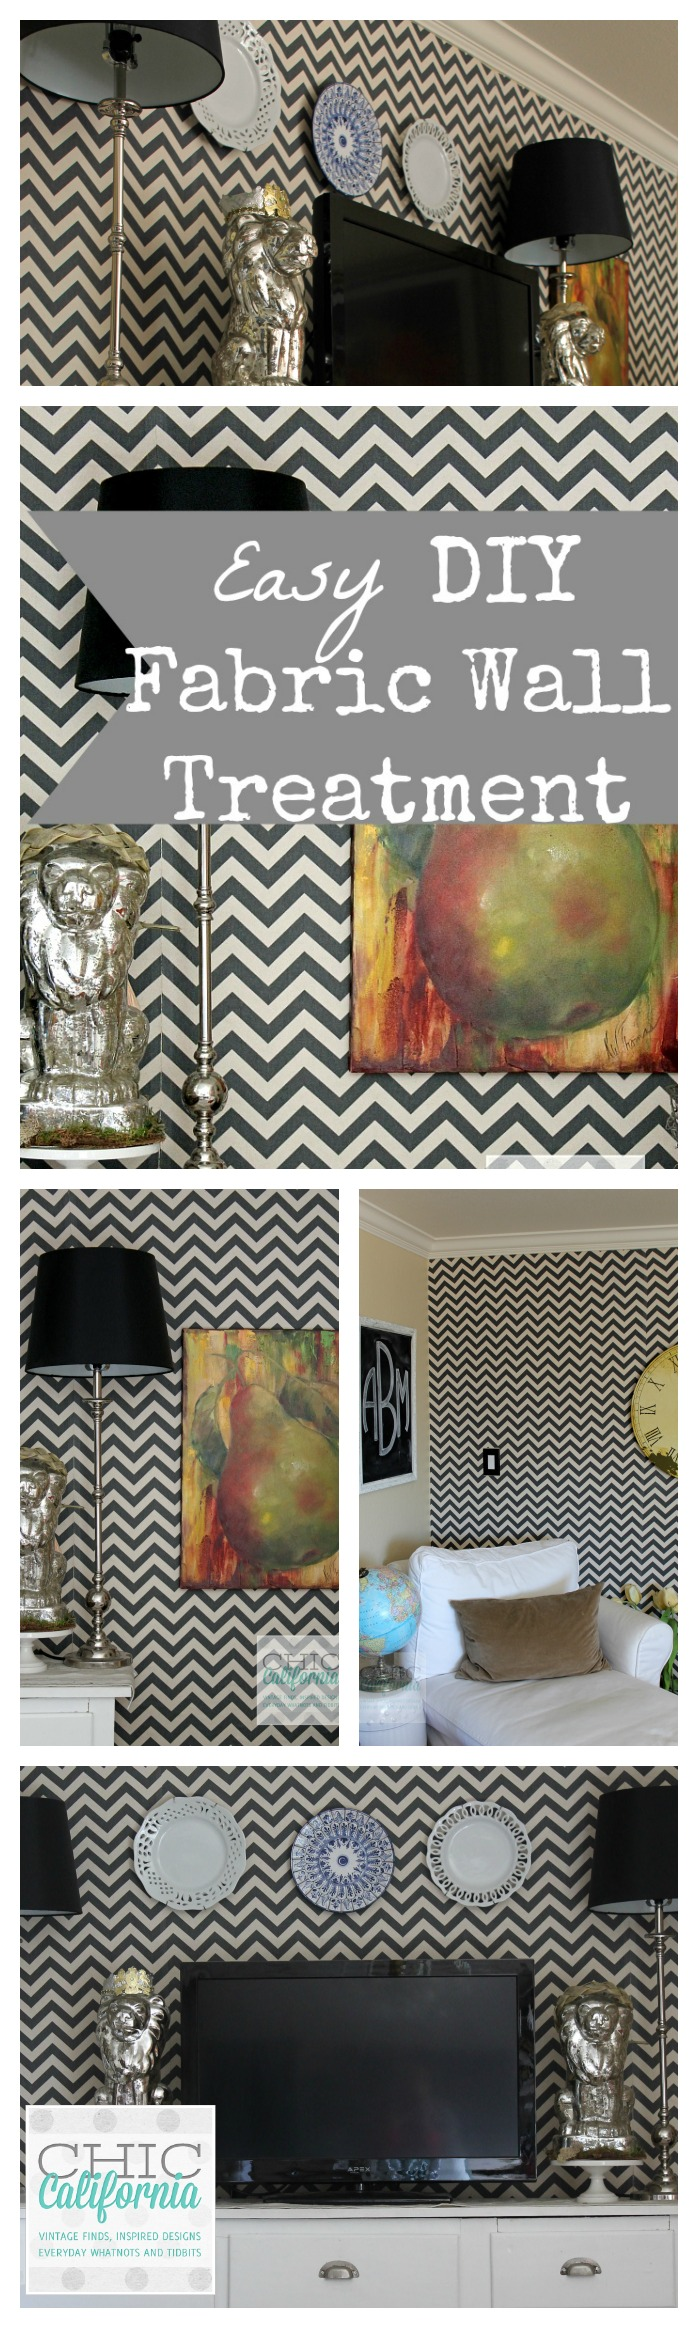 Easy DIY Fabric Wall Treament collage